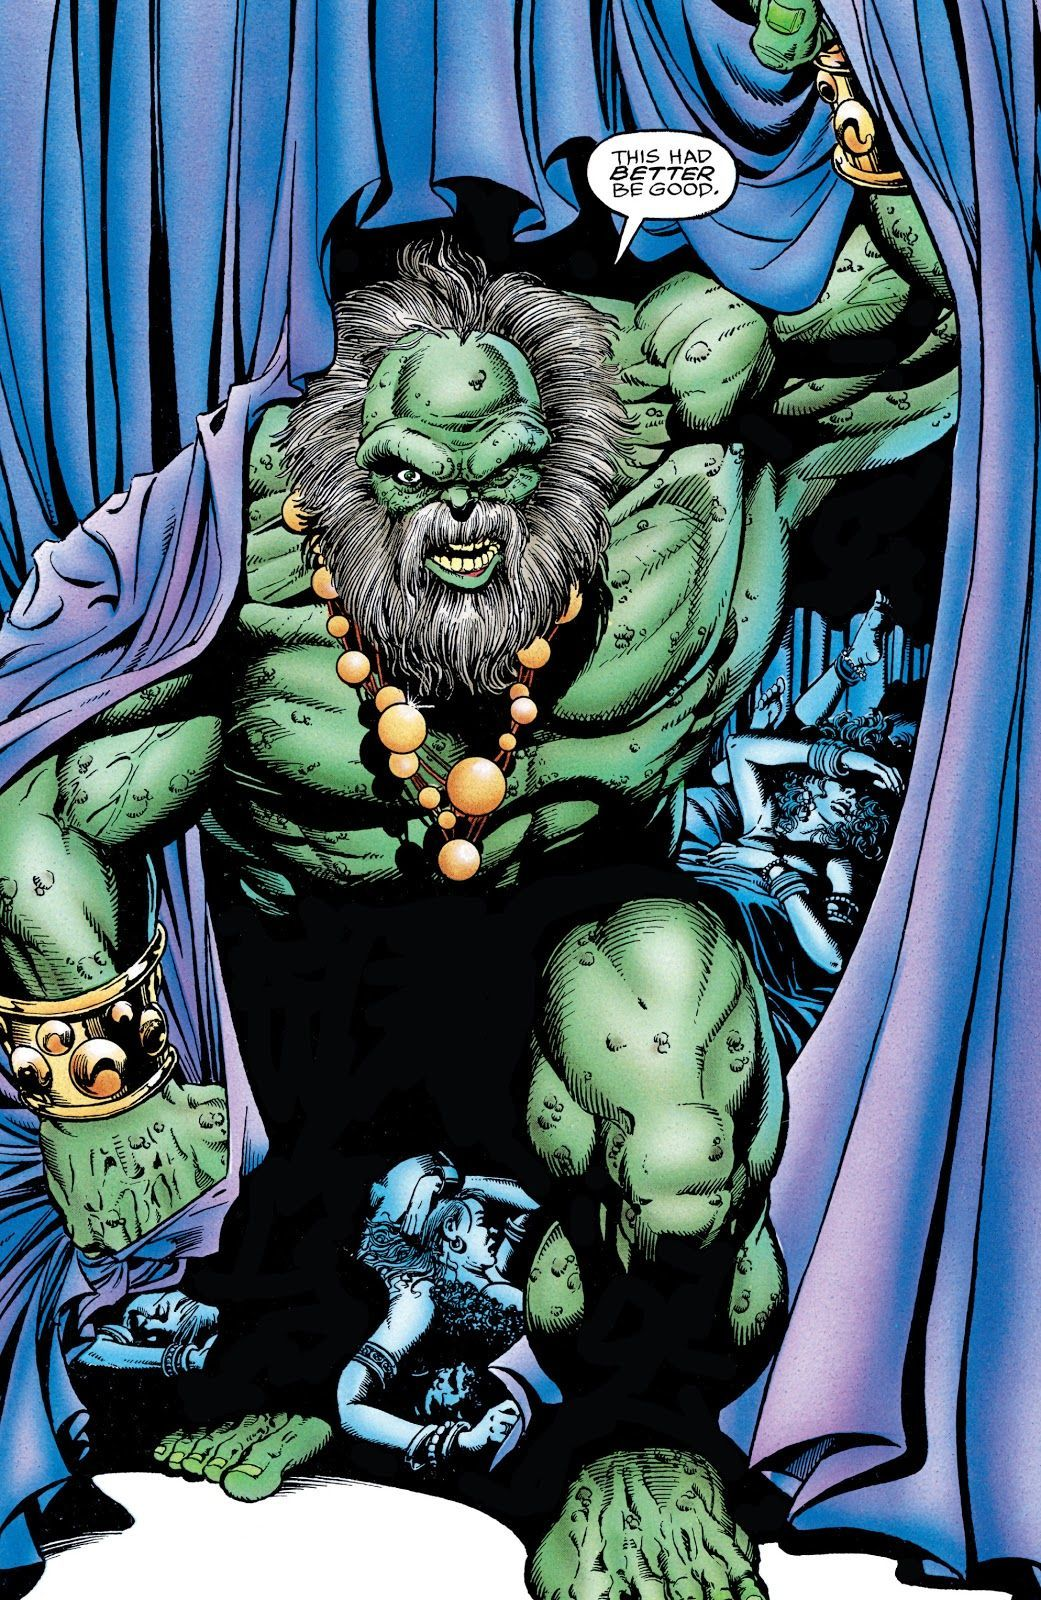 Hulk: Future Imperfect #1 (Written by Peter David, Art by George Perez)